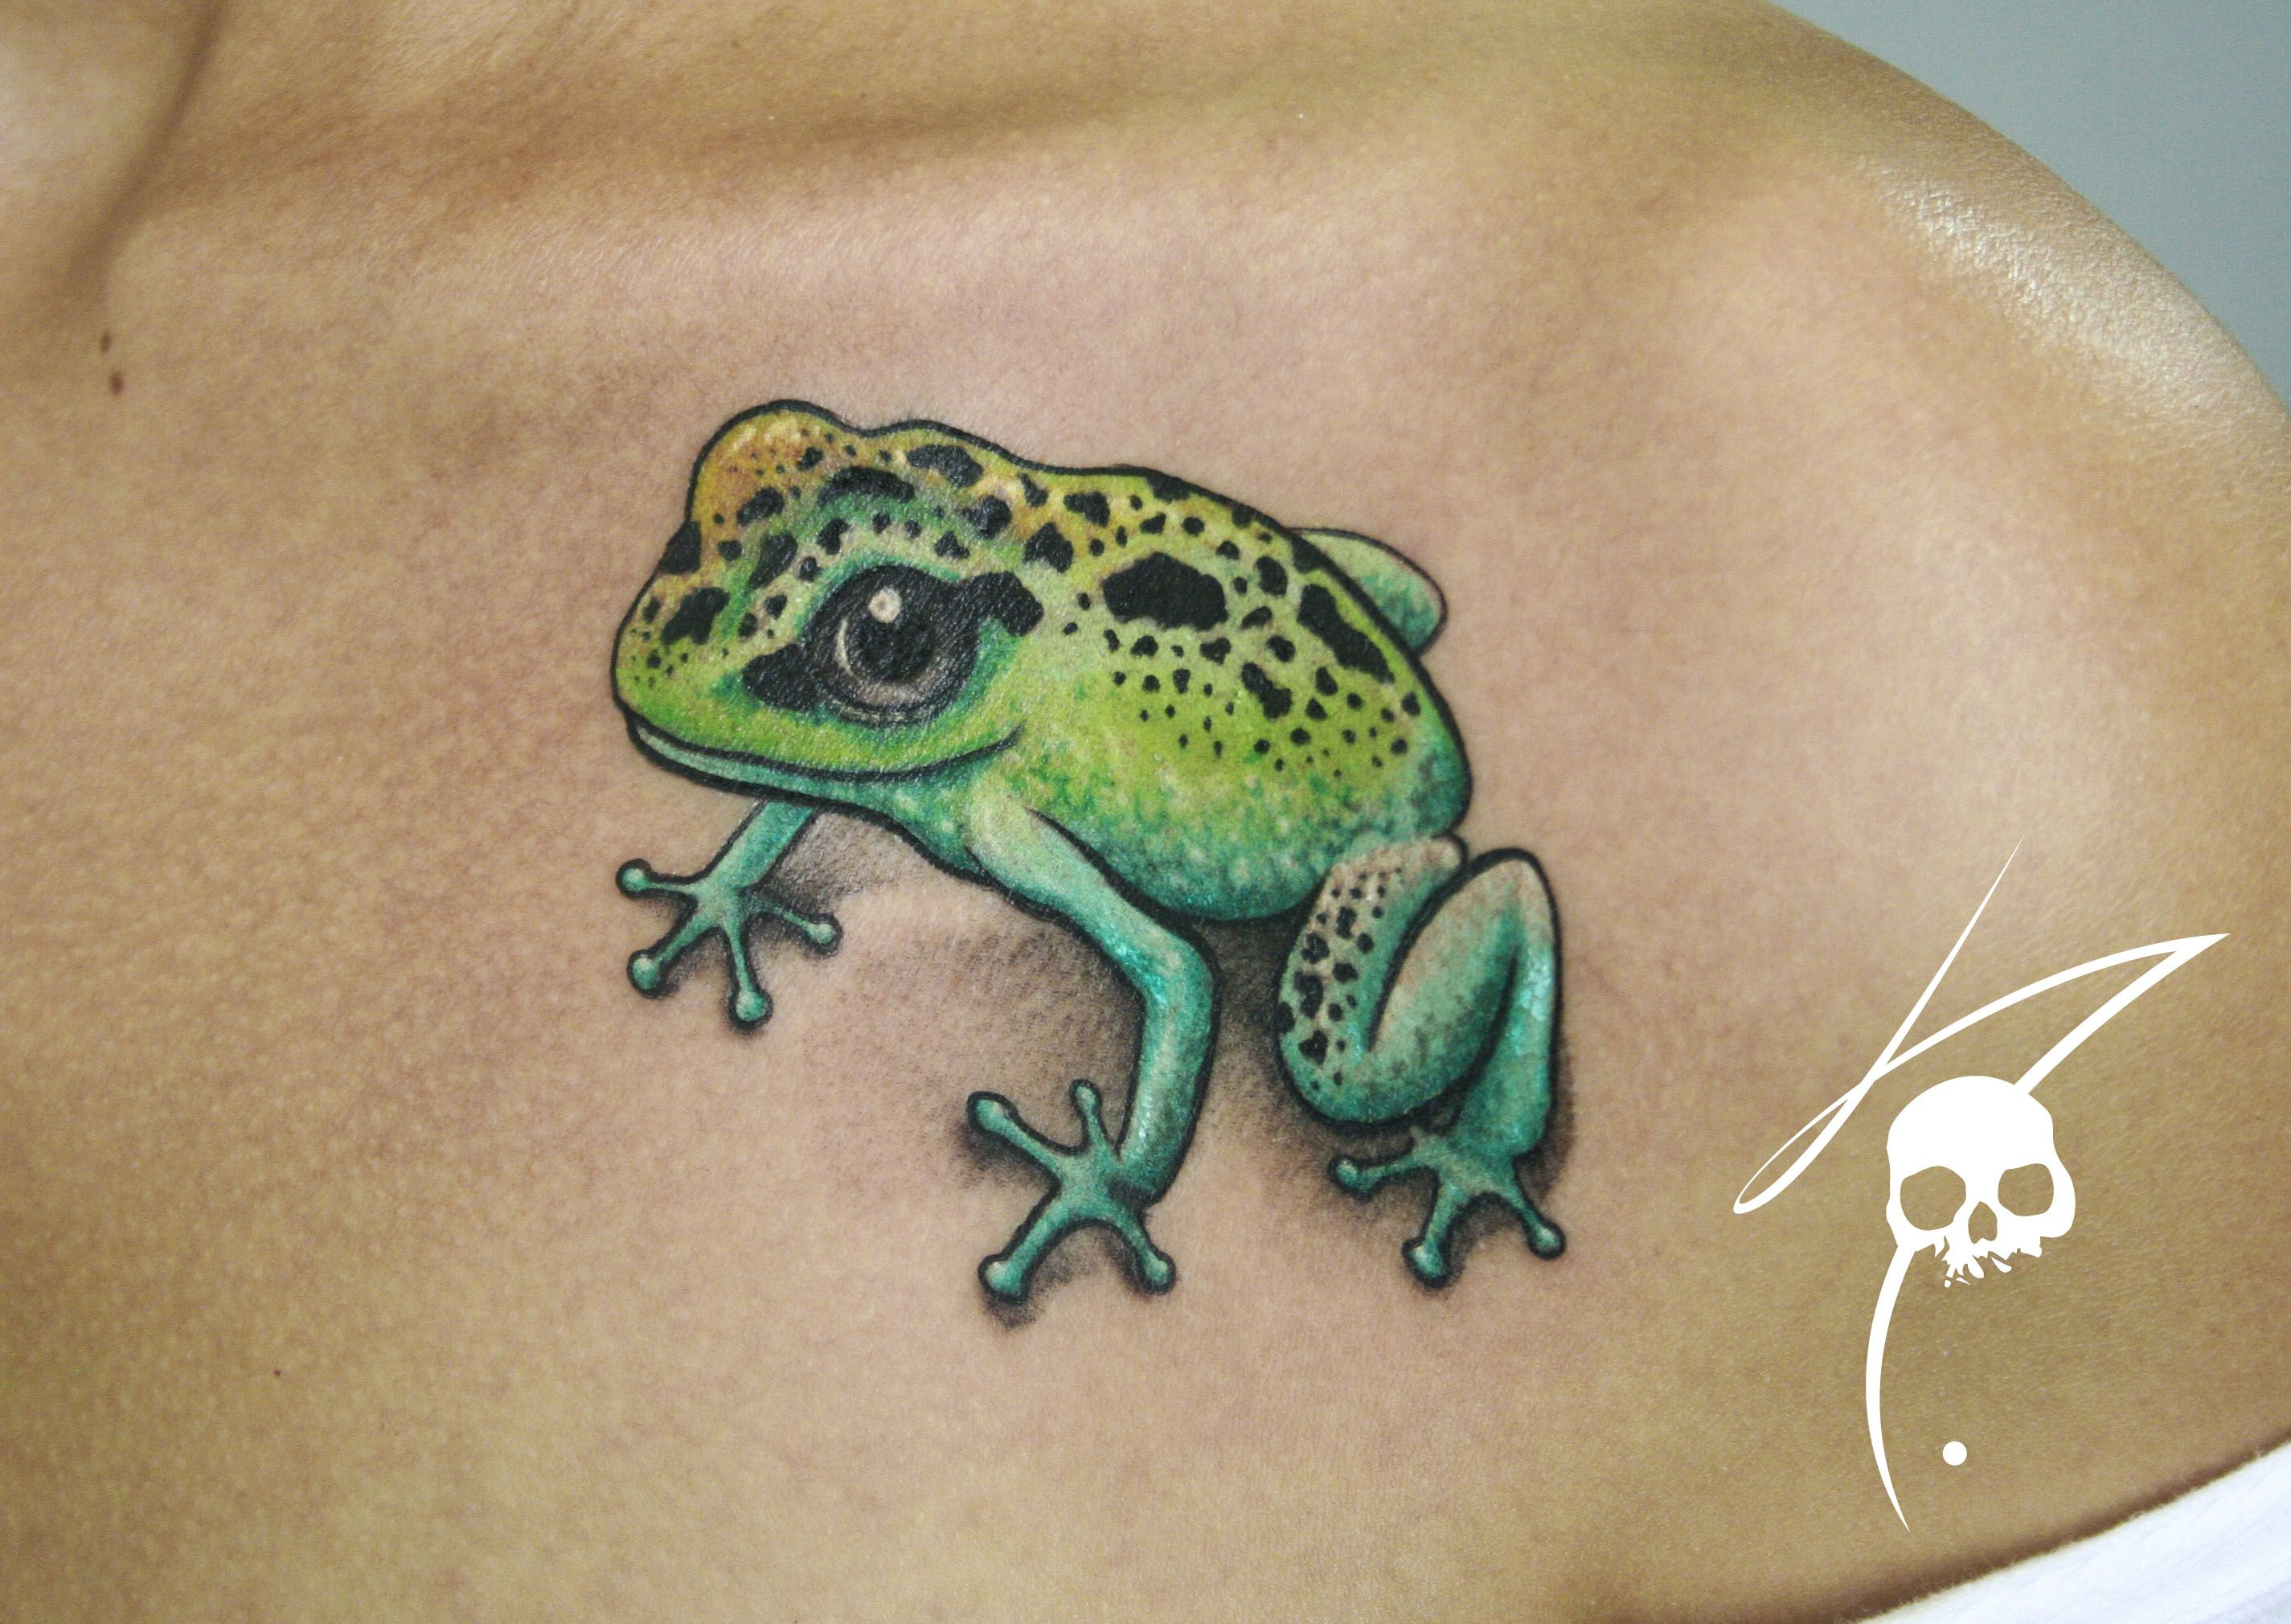 Top Colorful Frog Tattoos Images for Pinterest Tattoos | Tattoos ...